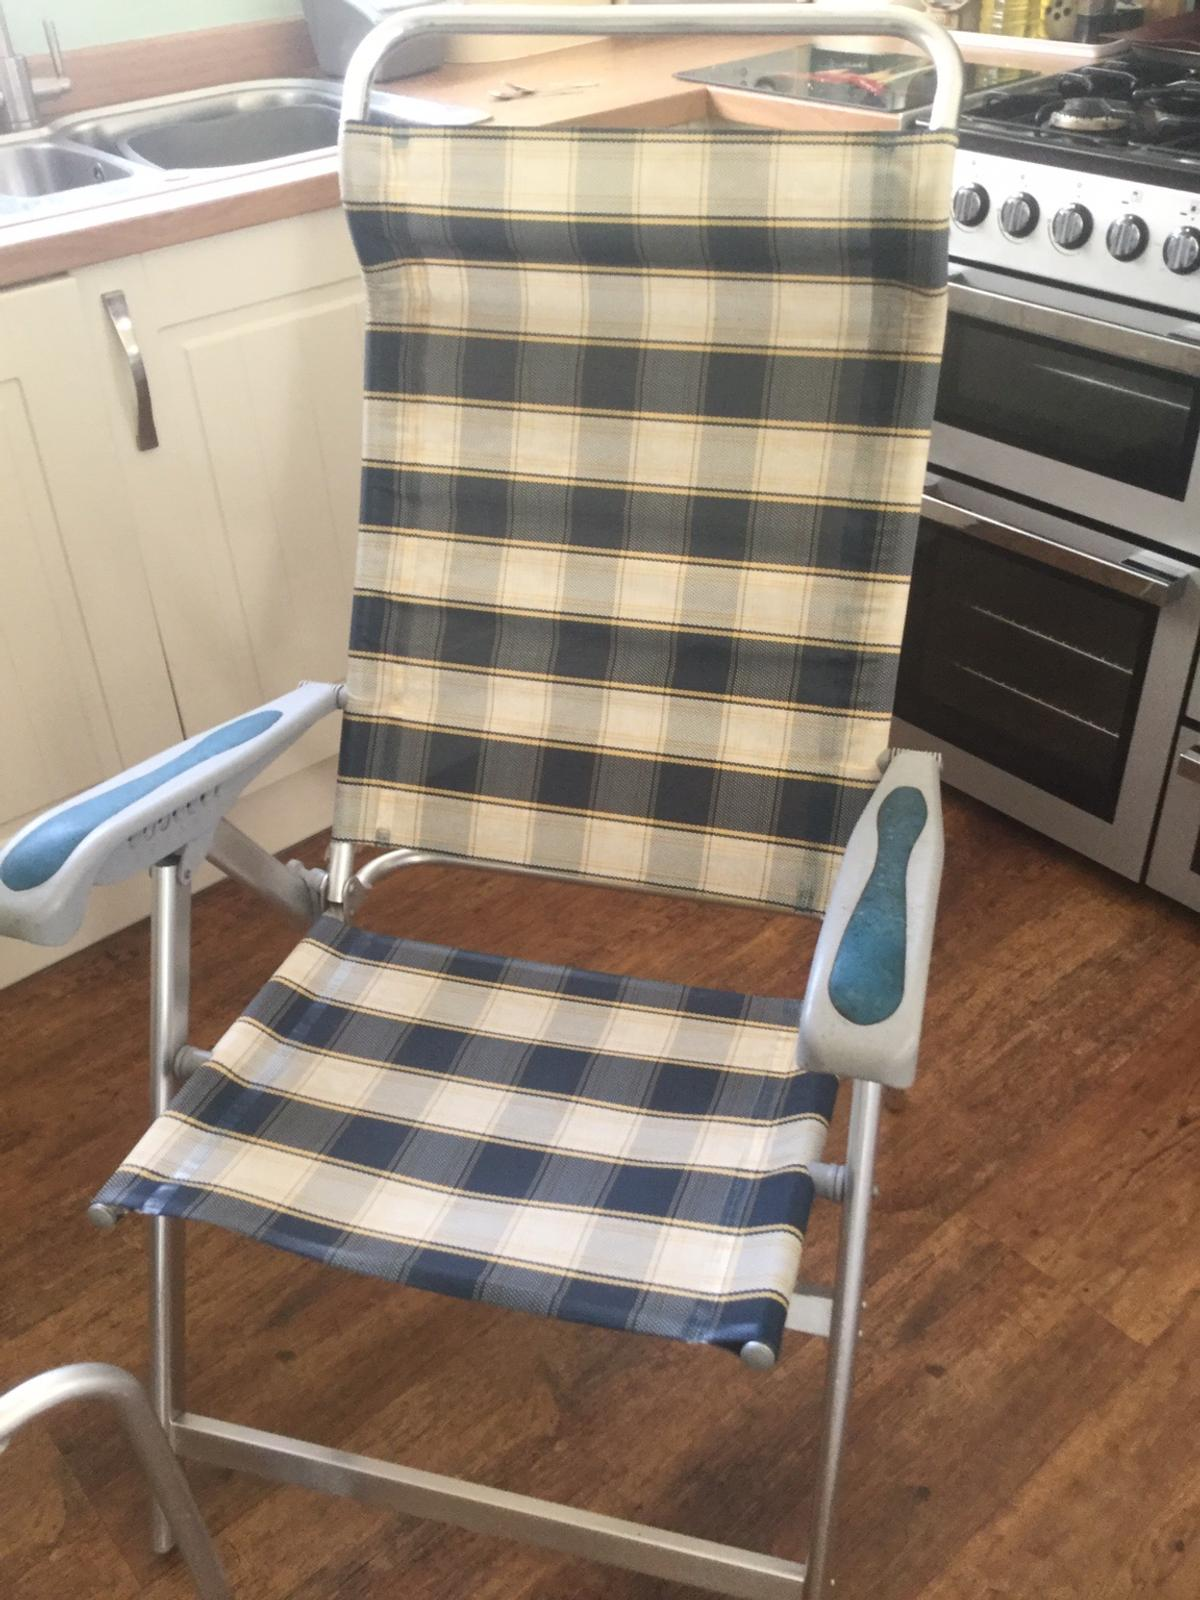 2 garden loungers & footrests Plus removable towelling covers